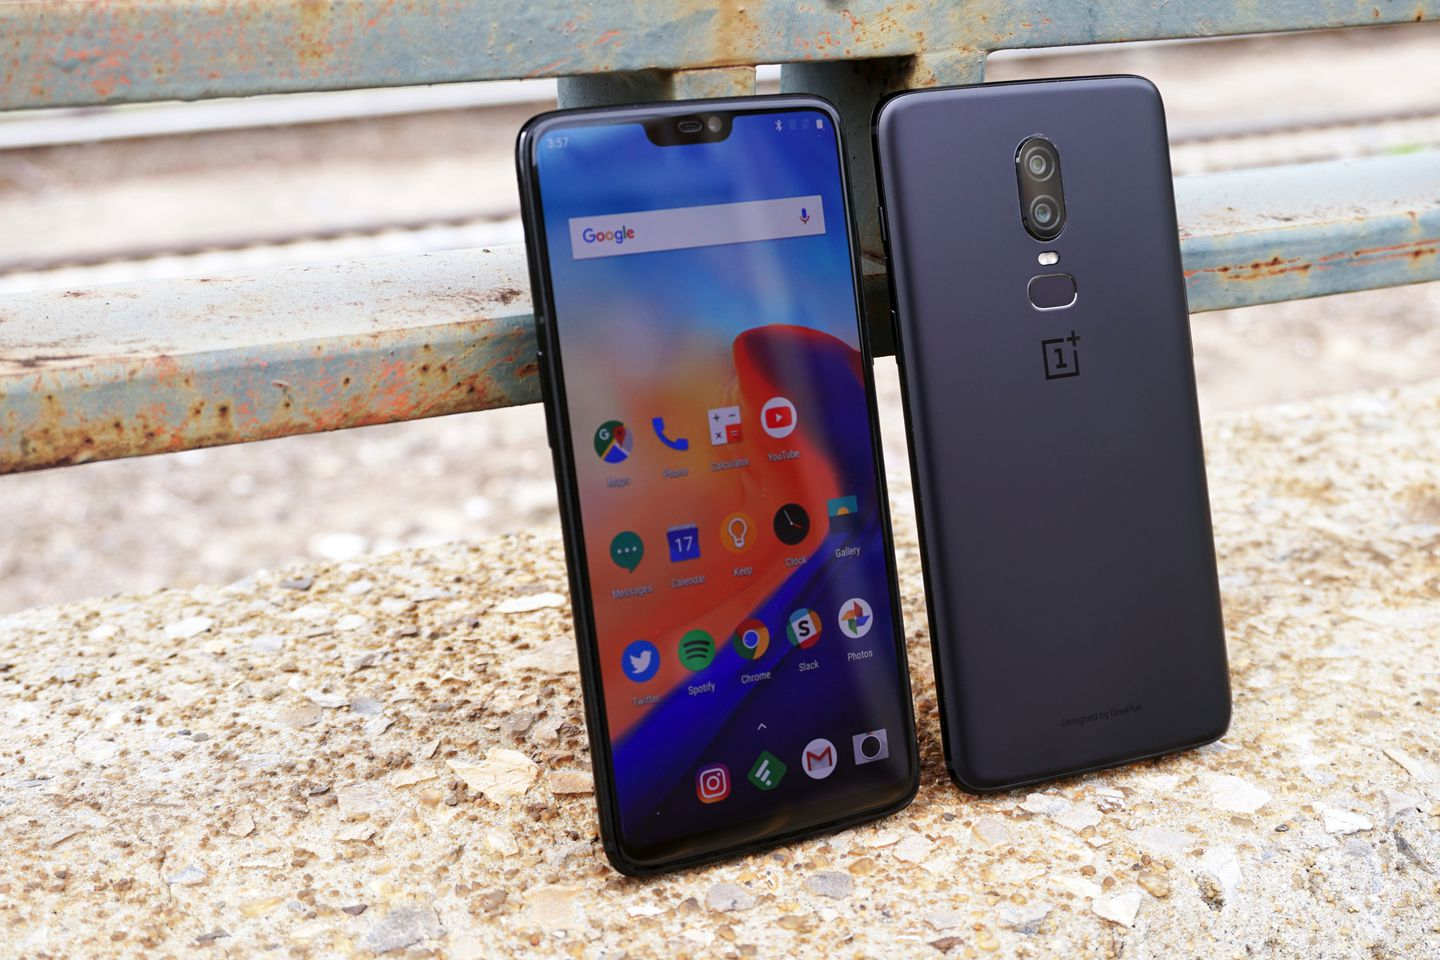 OnePlus 6, a rival of the iPhone X but with half the price